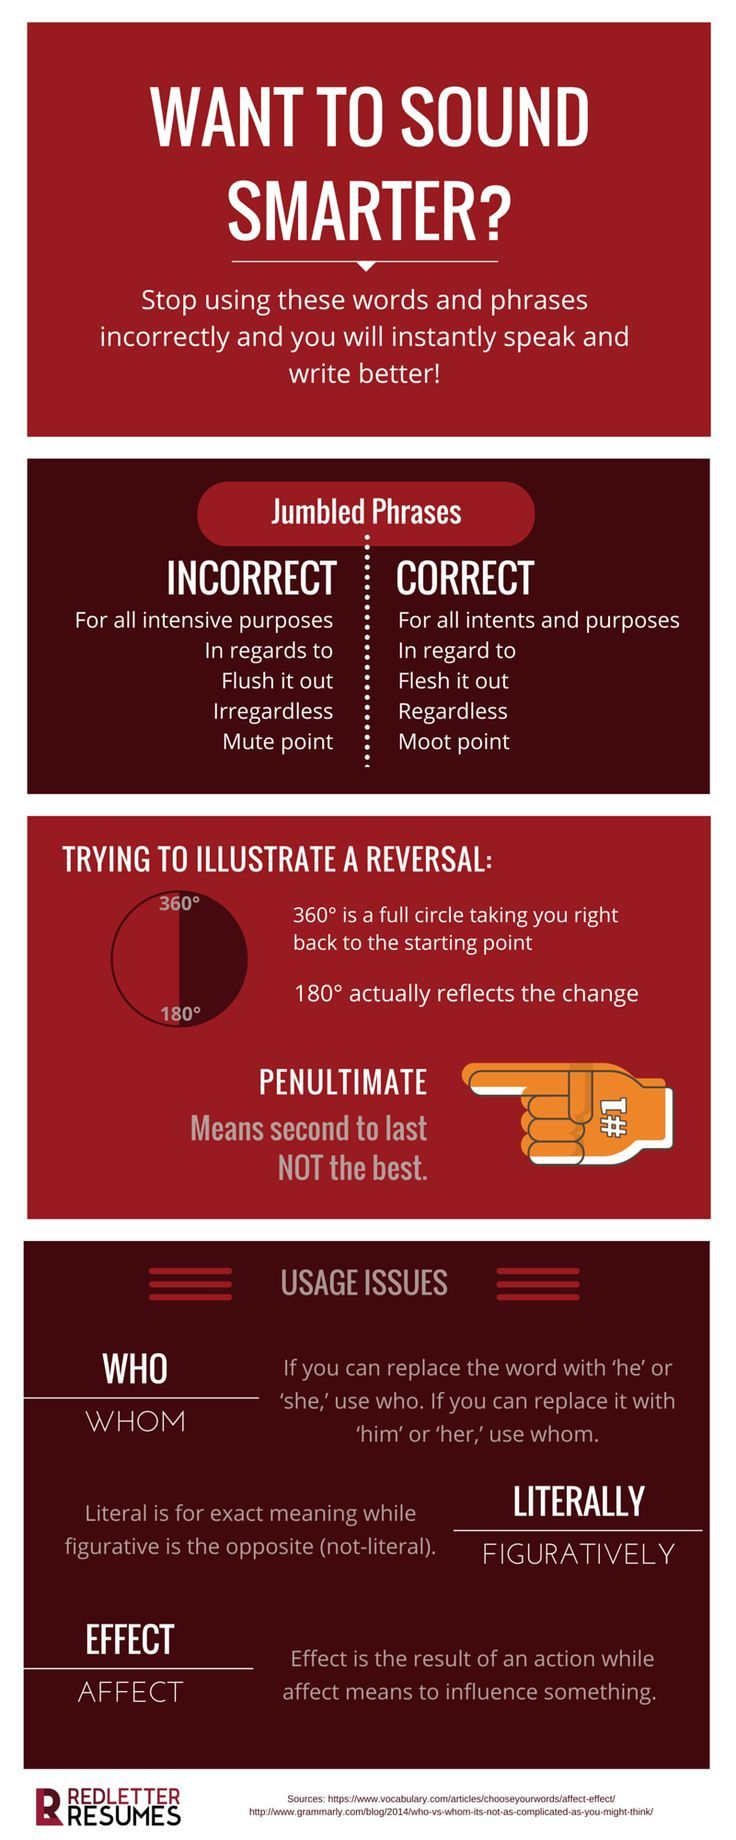 Want to Sound Smarter? Red Letter Resumes | Infographic